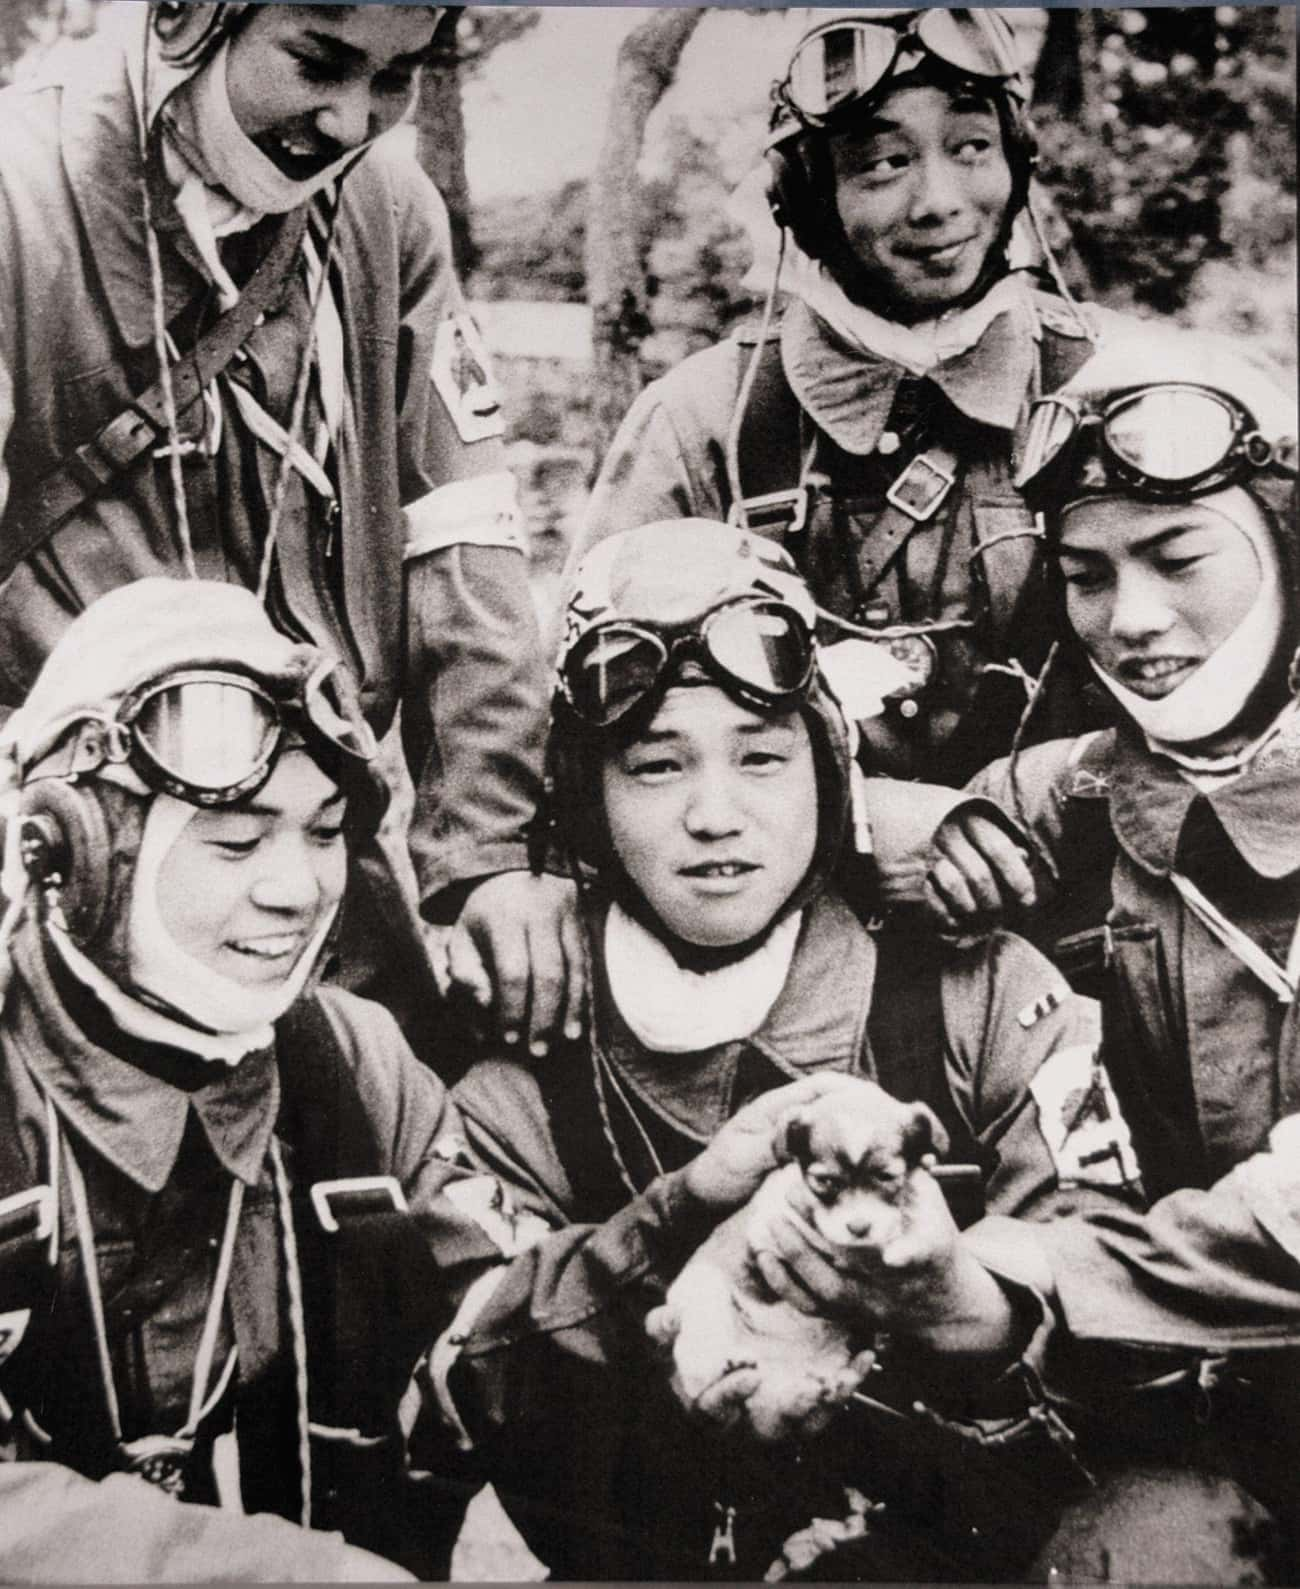 All Kamikaze Pilots Were Volun is listed (or ranked) 1 on the list 11 Fascinating Details About The Lives Of Kamikaze Pilots